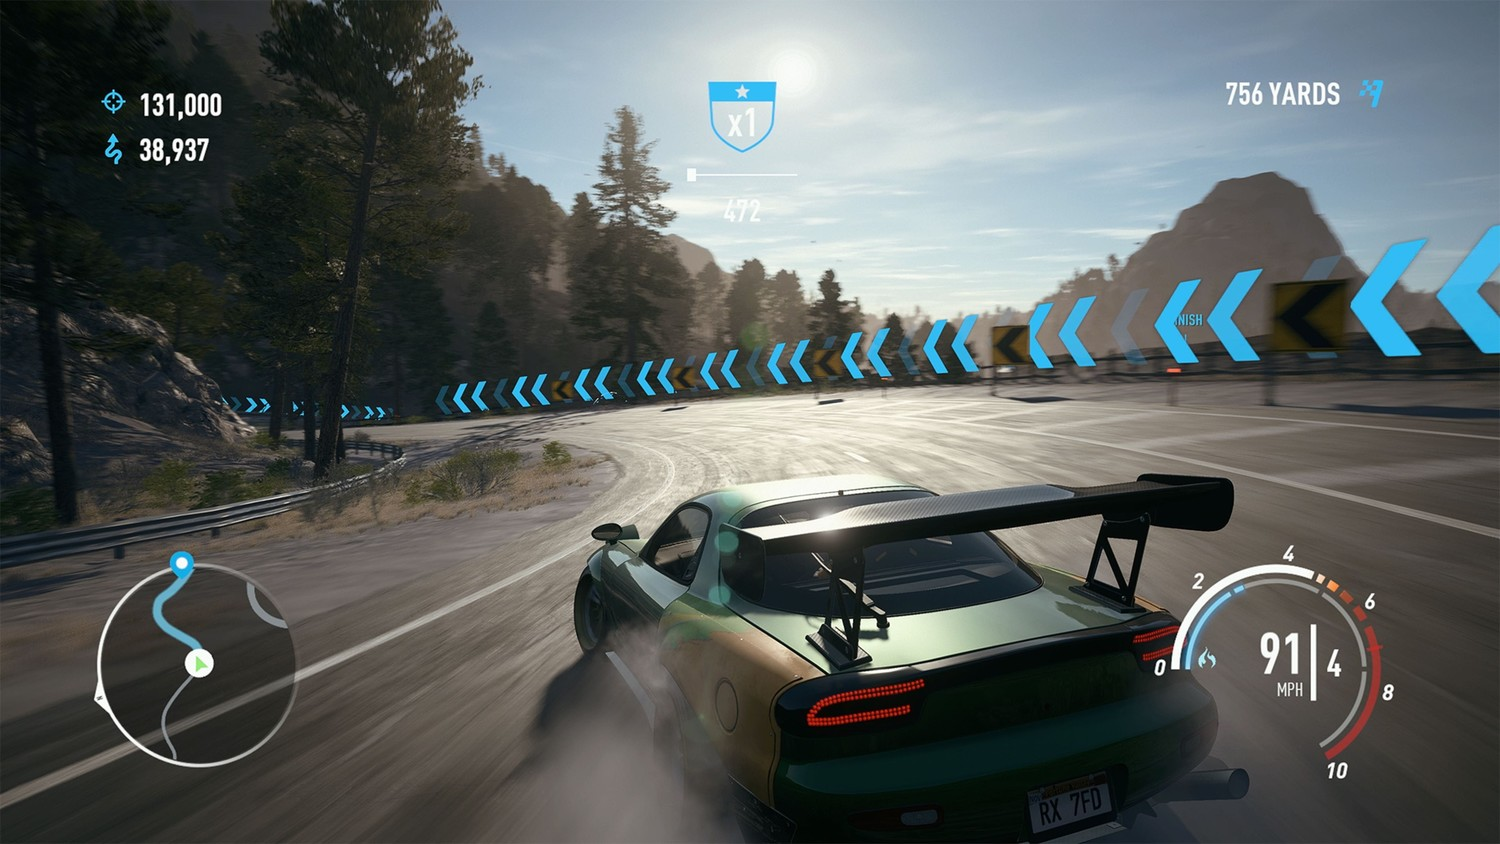 Screenshot for the game Need for Speed: Payback (2017) download torrent RePack